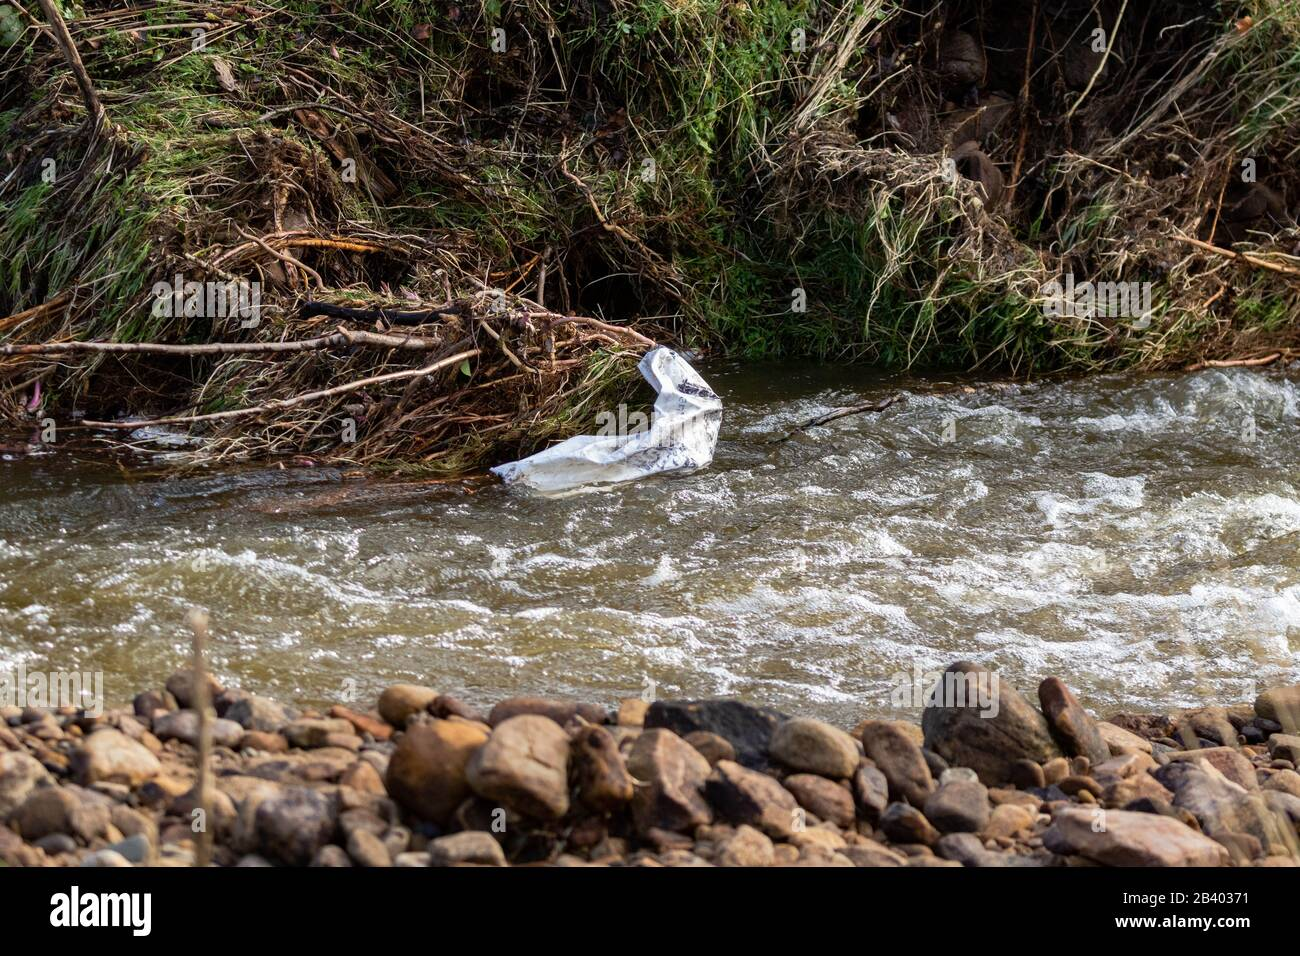 A plastic sack caught up at the side of a stream. Stock Photo